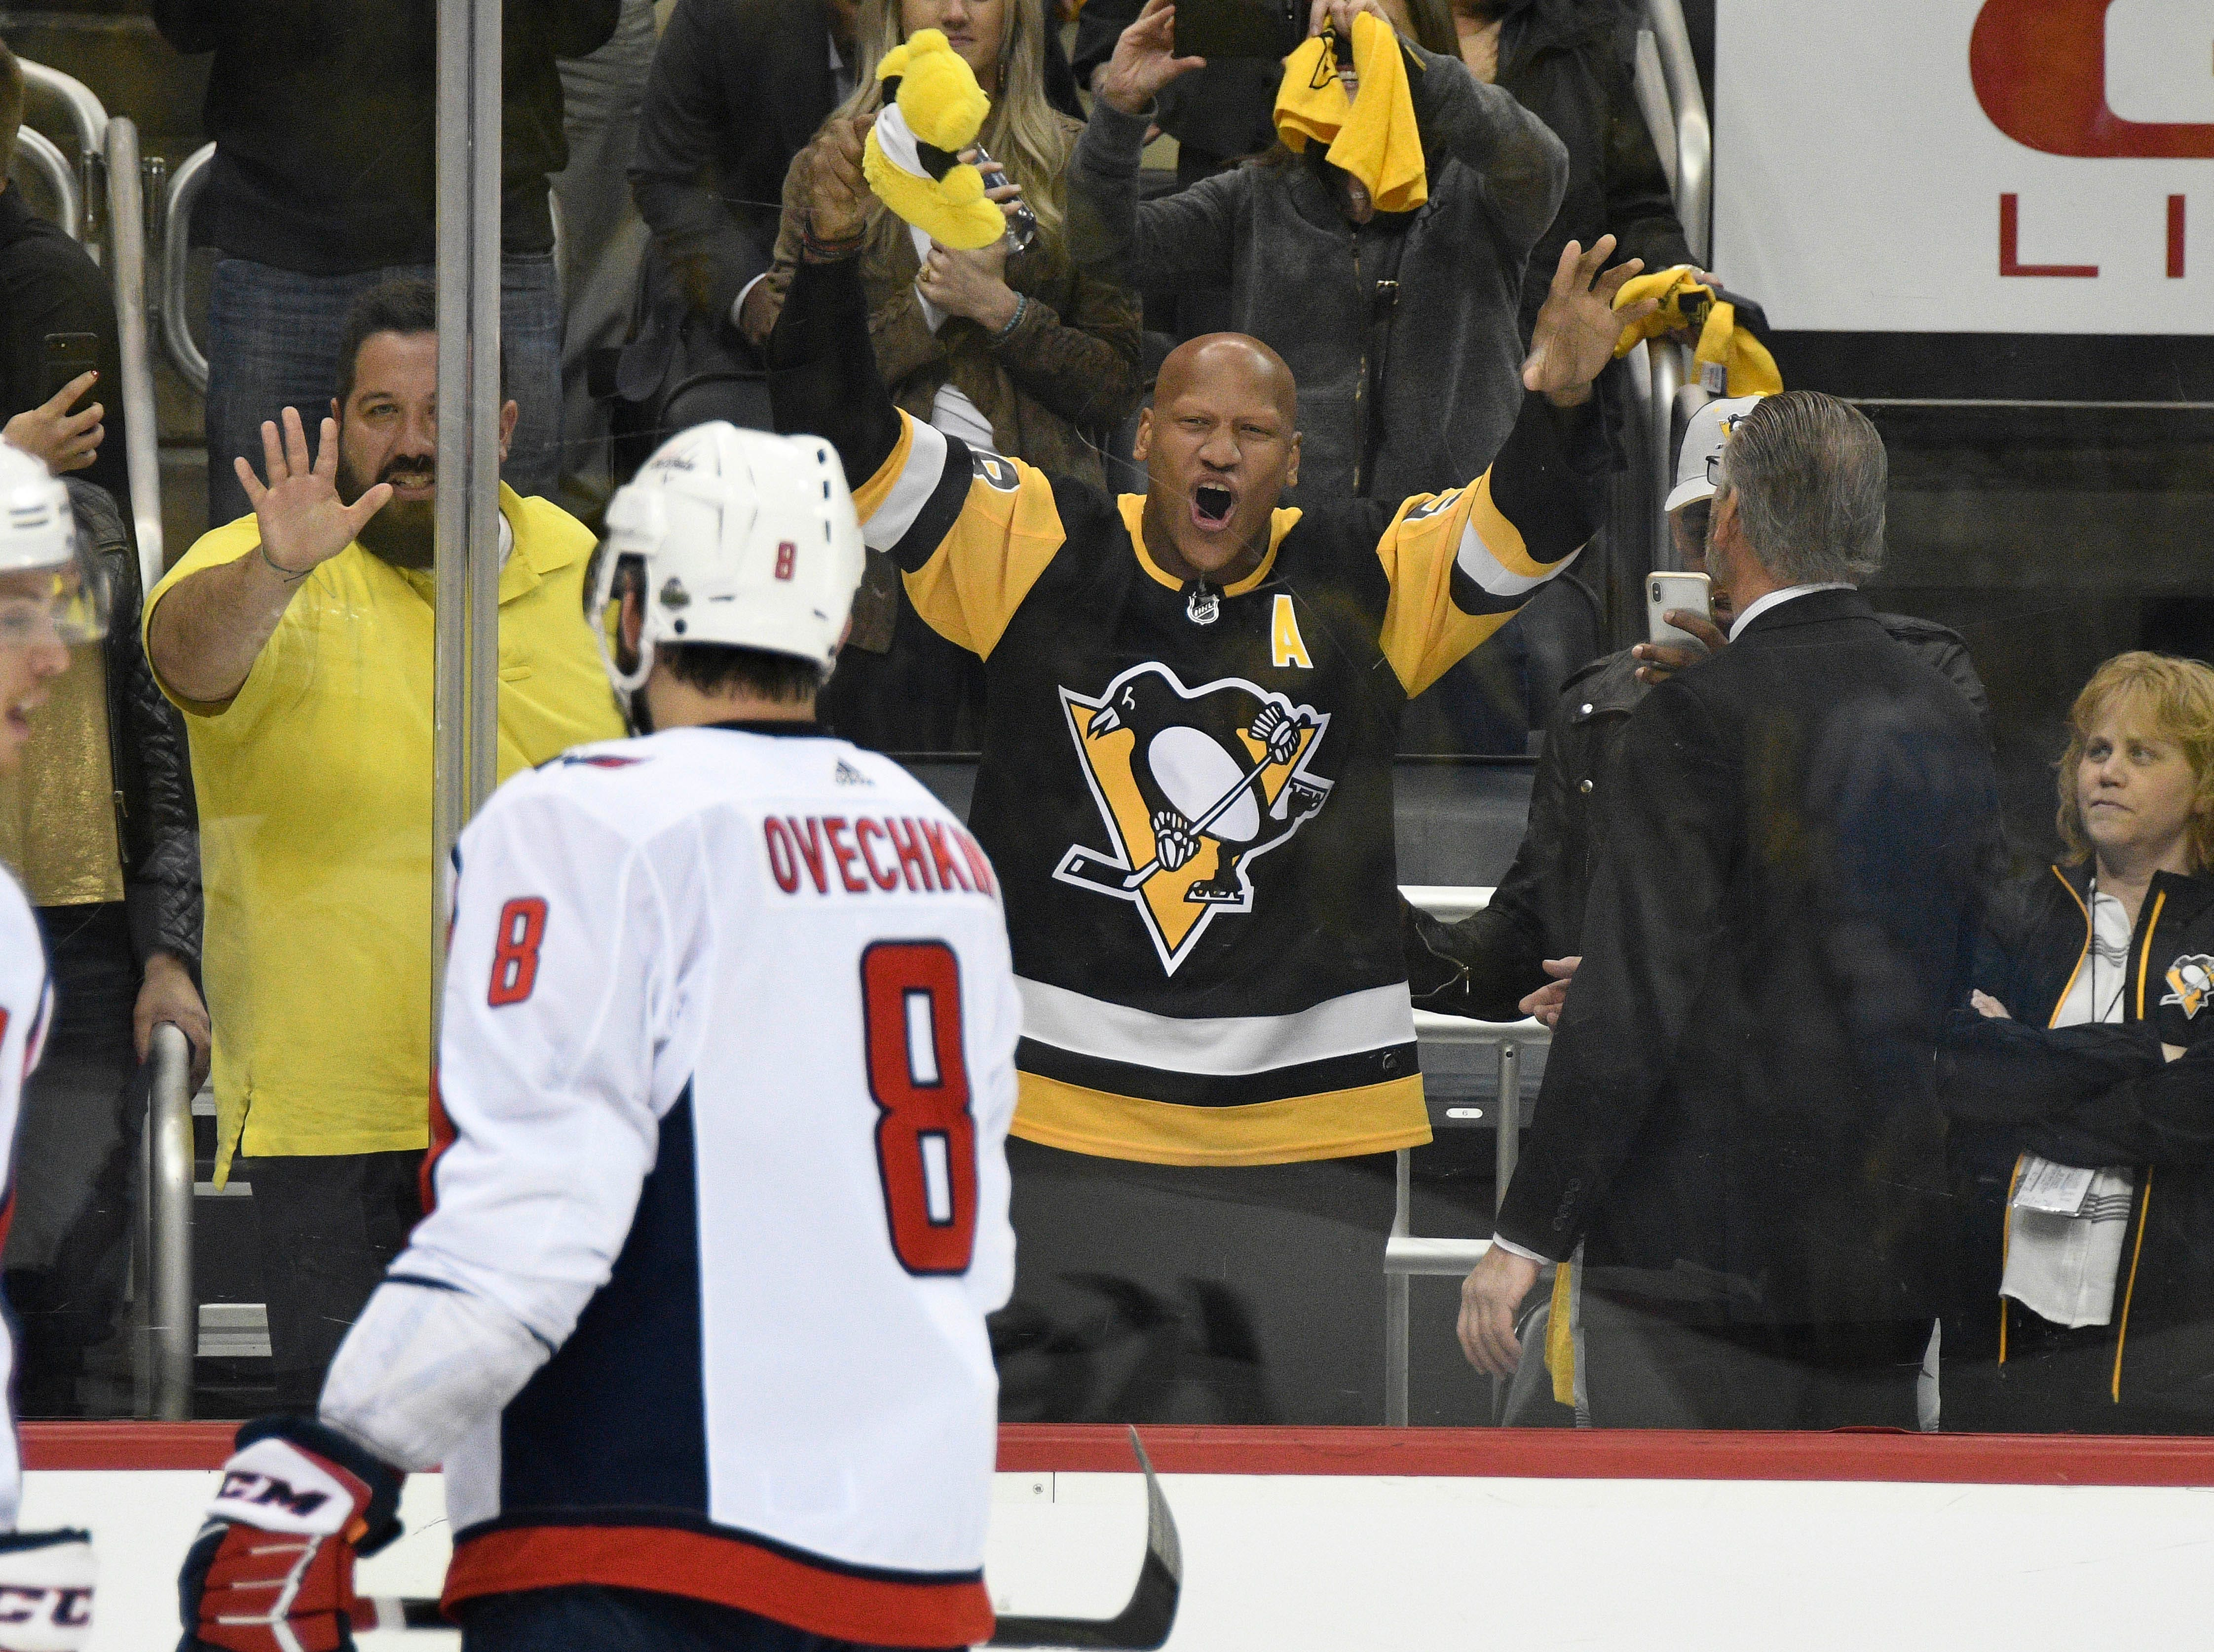 May 3: The Pittsburgh Steelers' Ryan Shazier celebrates after the Penguins scored an empty-net goal to seal a win over the Washington Capitals in Game 4 of their second-round series.